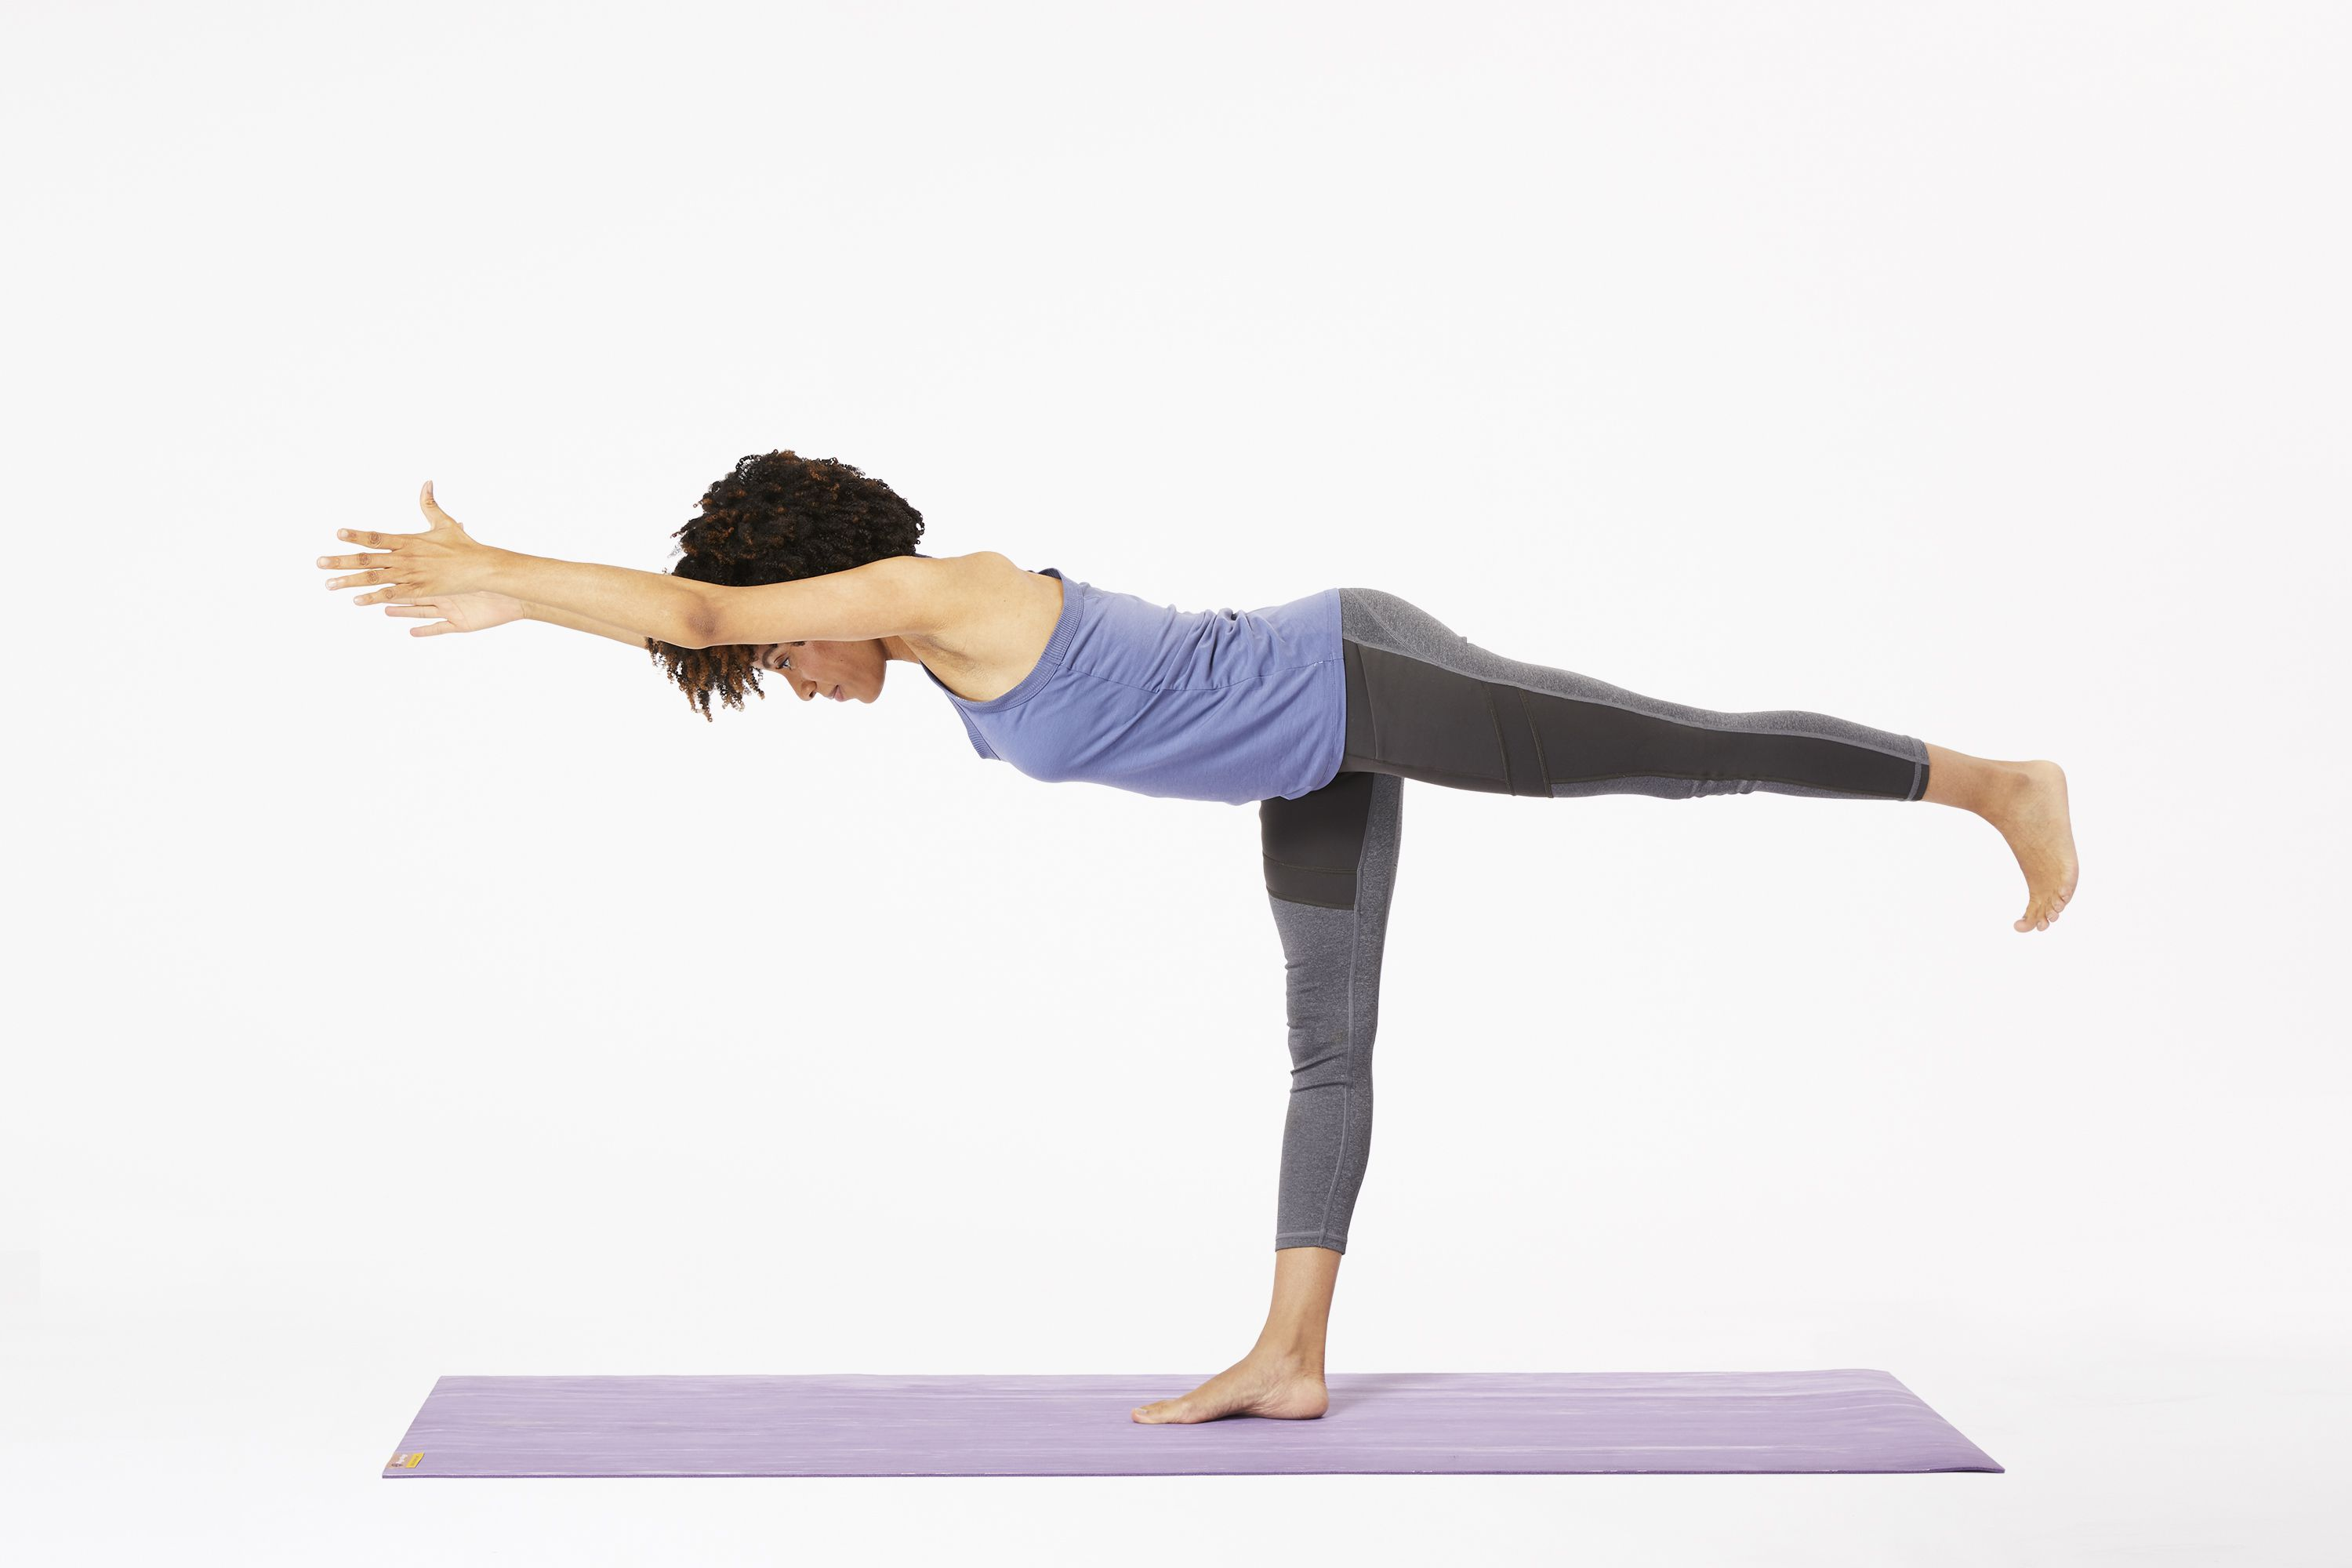 Yoga Poses For 3 Pictures